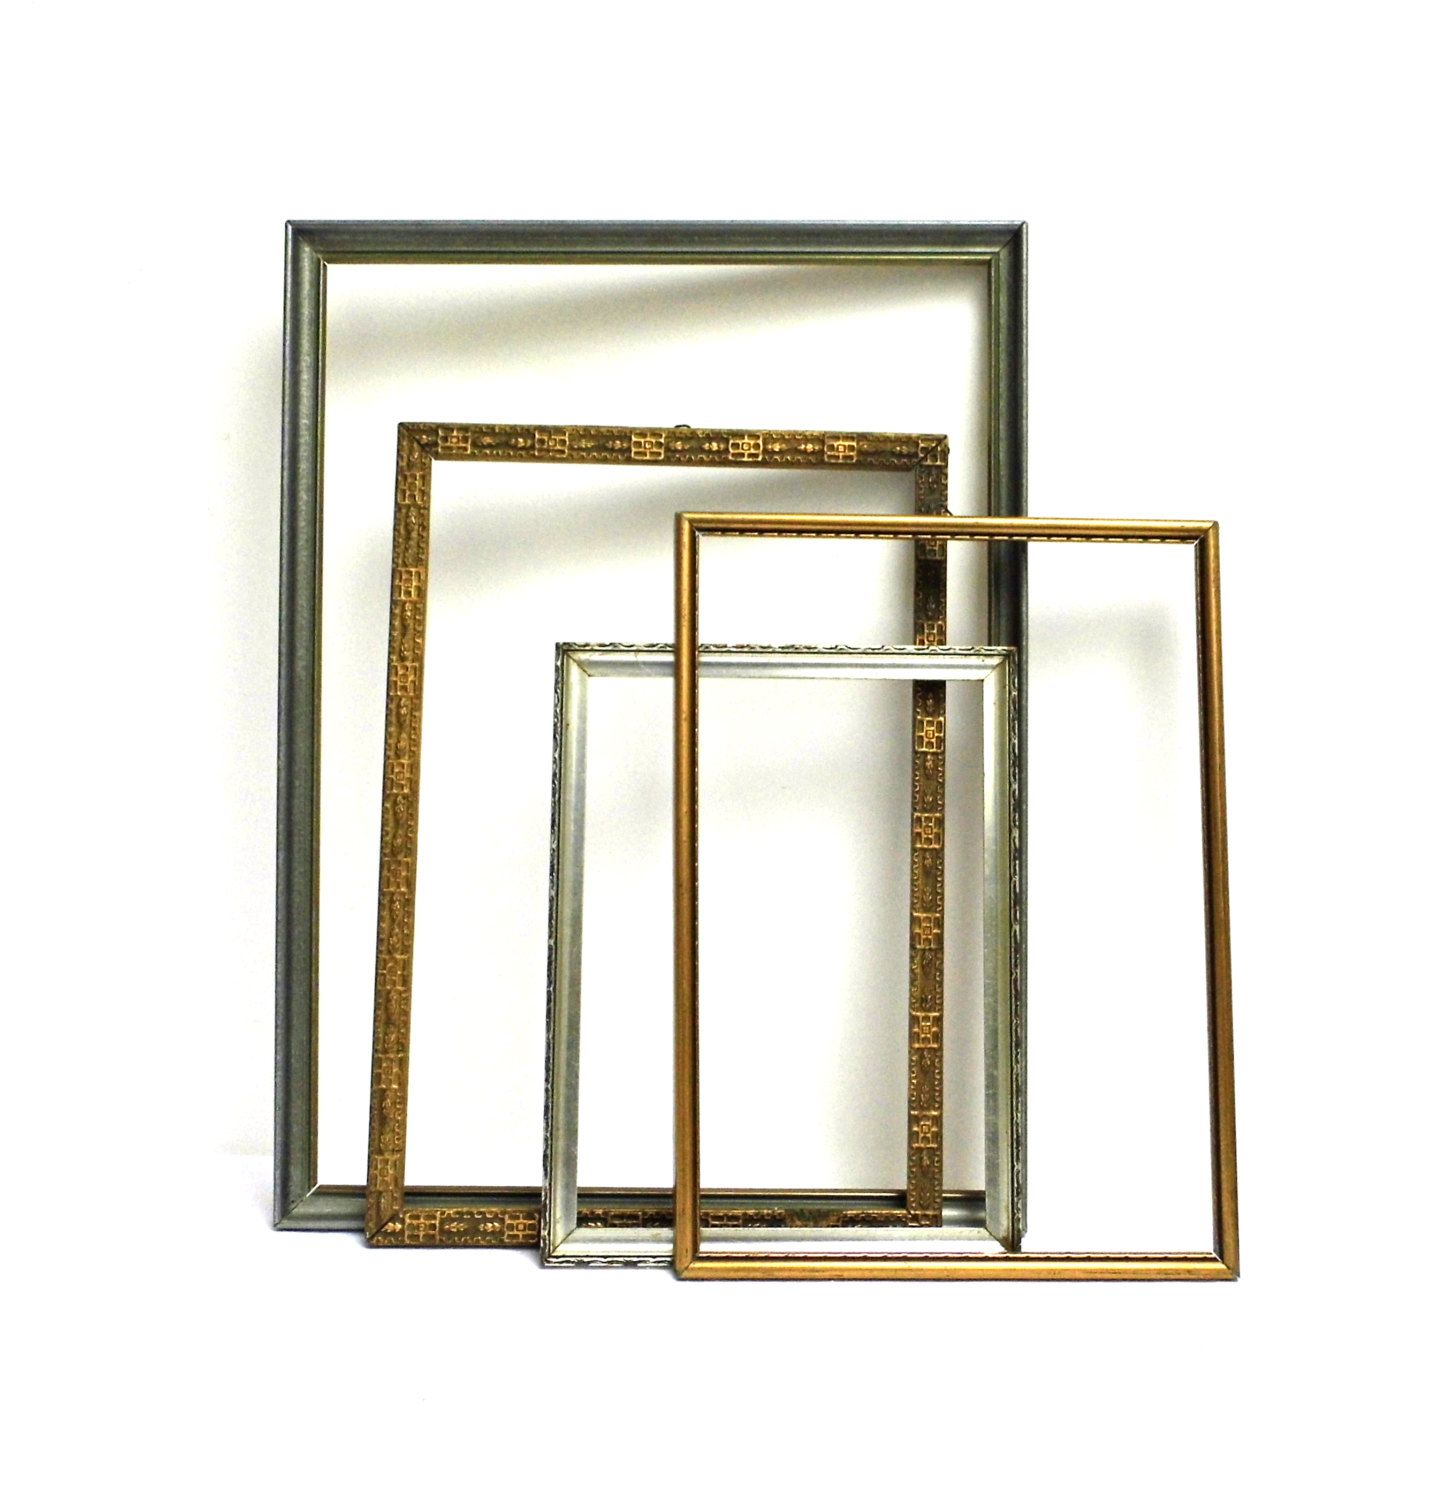 Set 4 Vintage Wood Open Frame Picture Mirror Wall Hanging